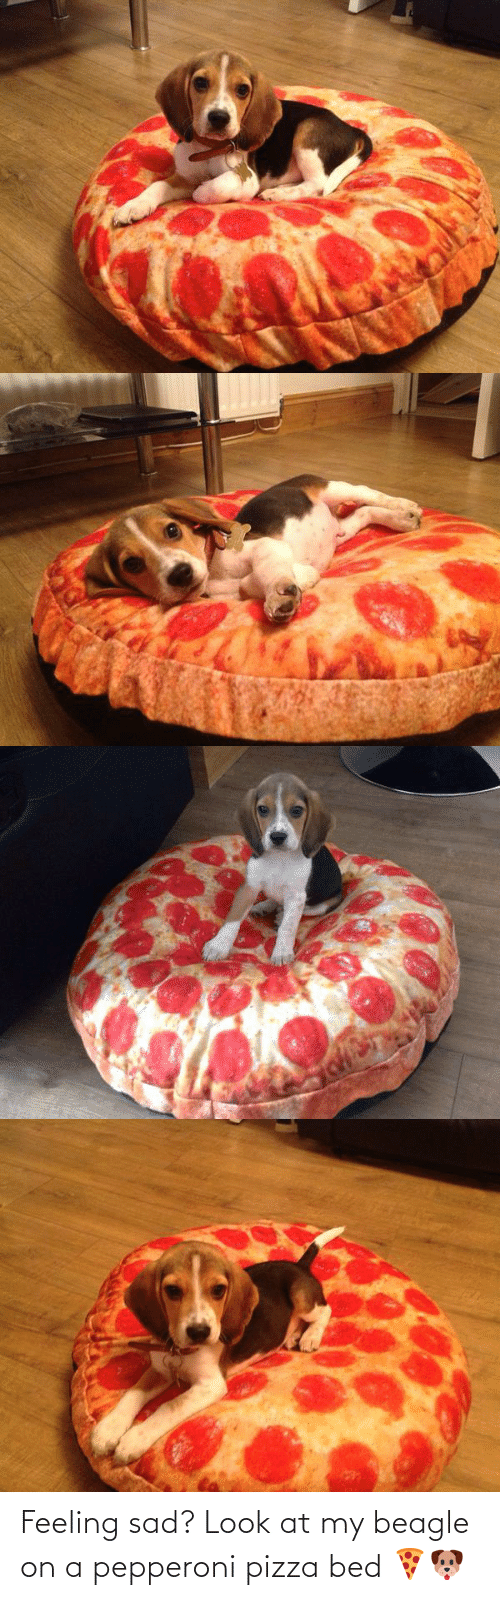 bed: Feeling sad? Look at my beagle on a pepperoni pizza bed 🍕🐶